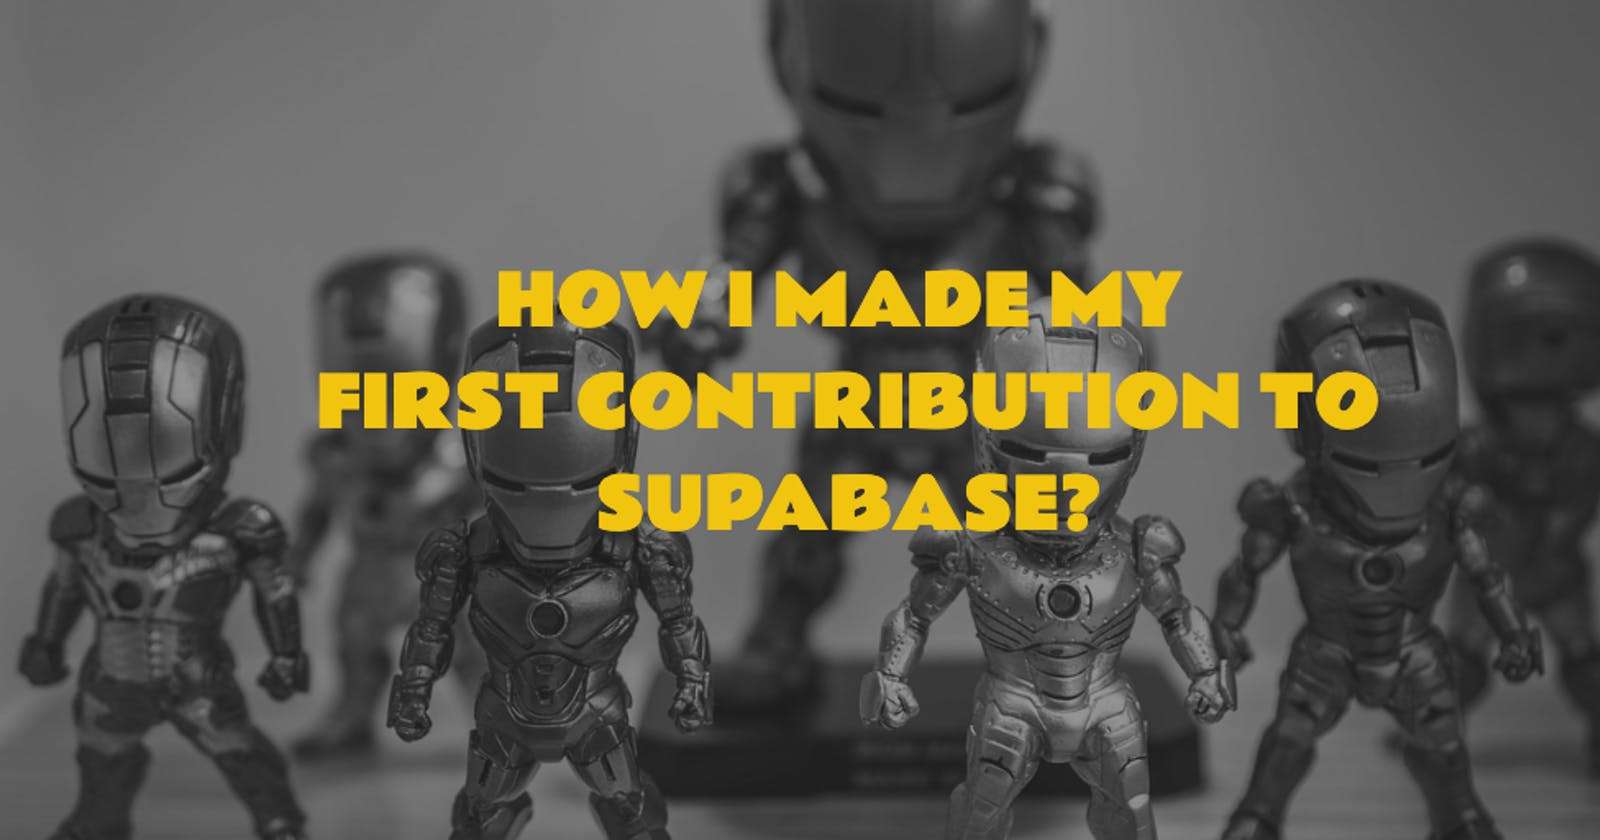 How I made my first contribution to supabase?